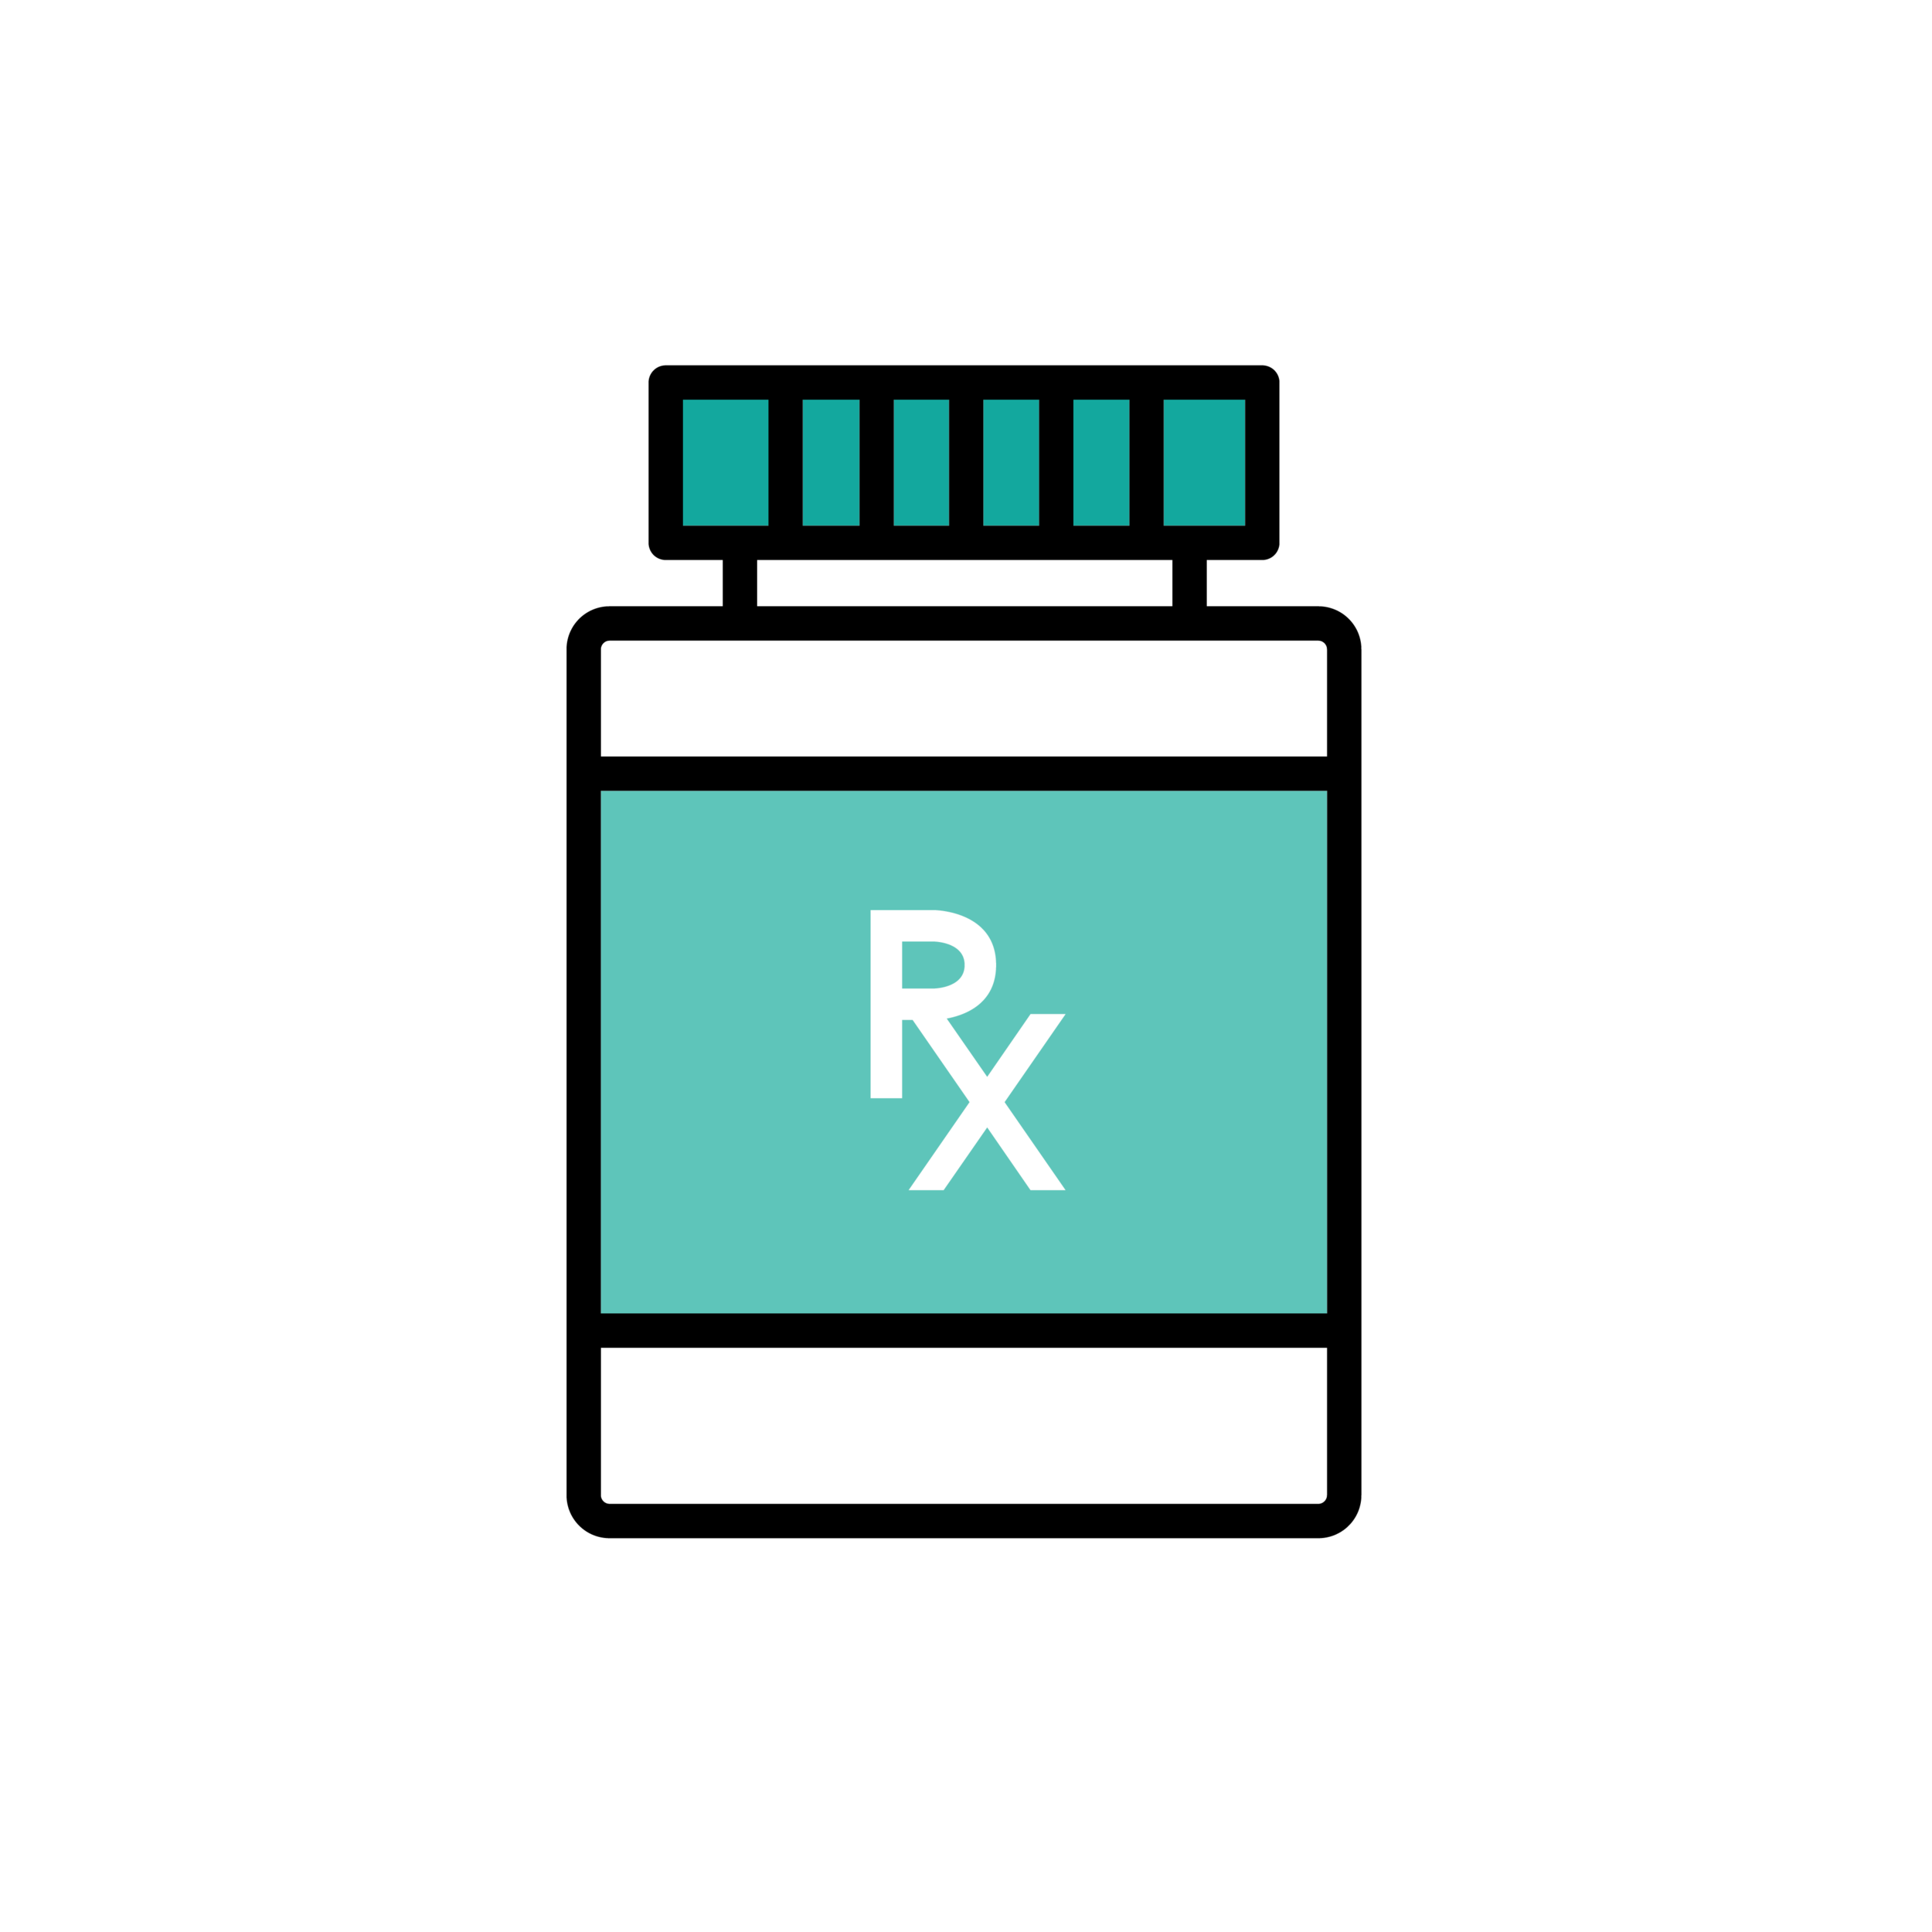 advisage home page icon pill bottle-02.png